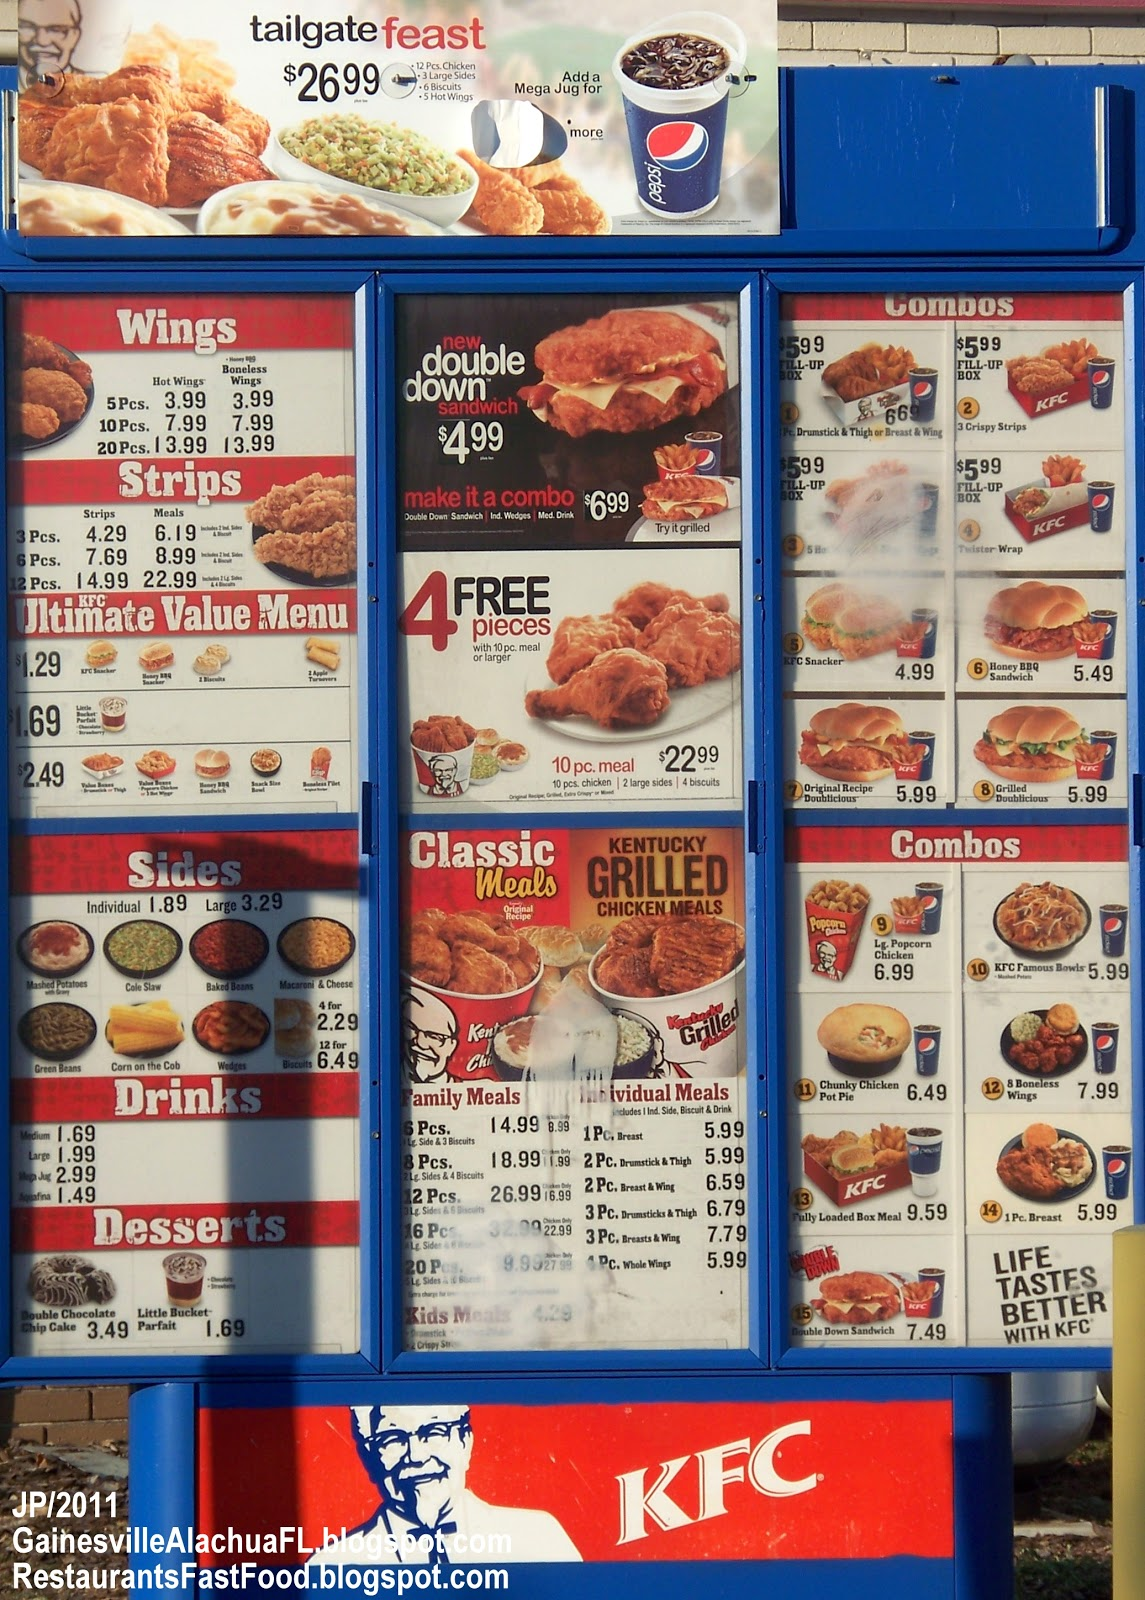 KFC Kentucky Fried Chicken Menu - photo#5